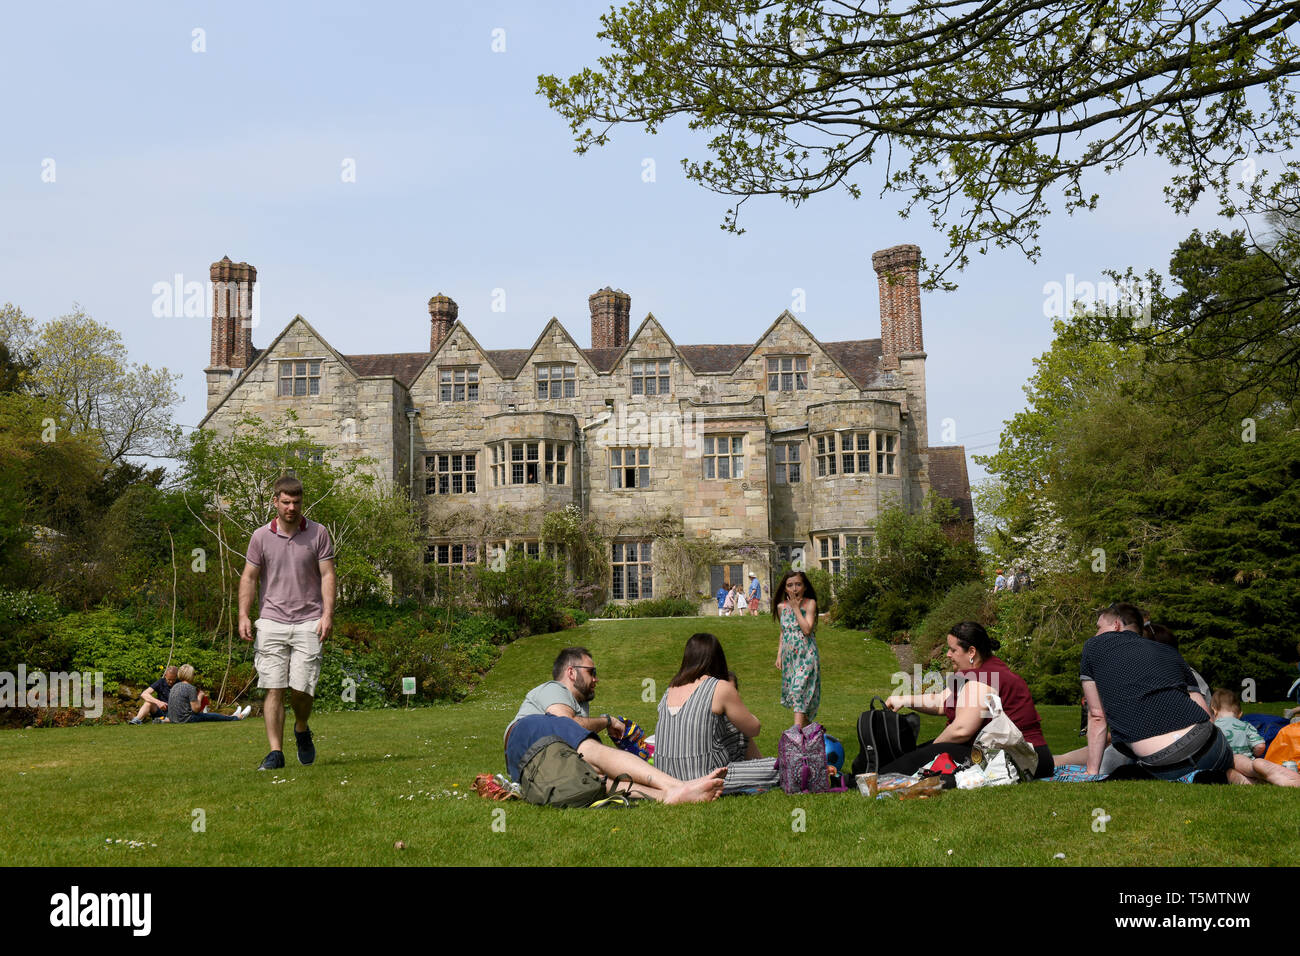 People having a picnic in front of Benthall Hall, Shropshire, England. - Stock Image